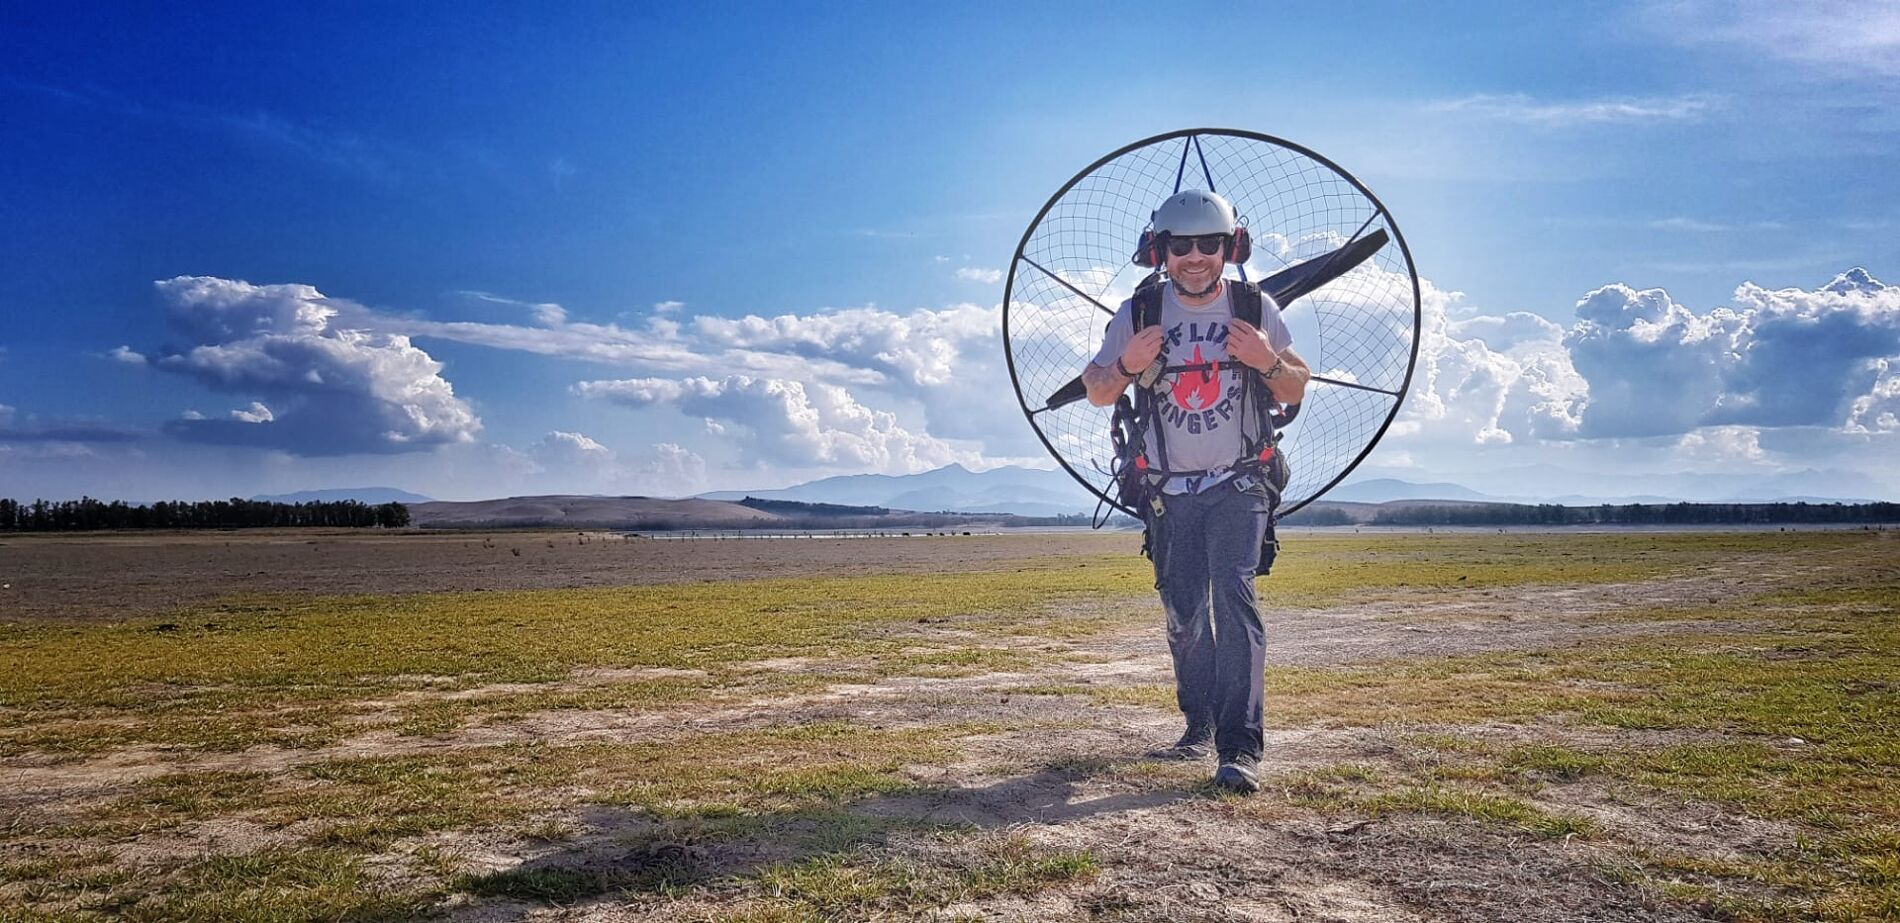 Looking for Summer Paramotoring tuition courses and Lessons